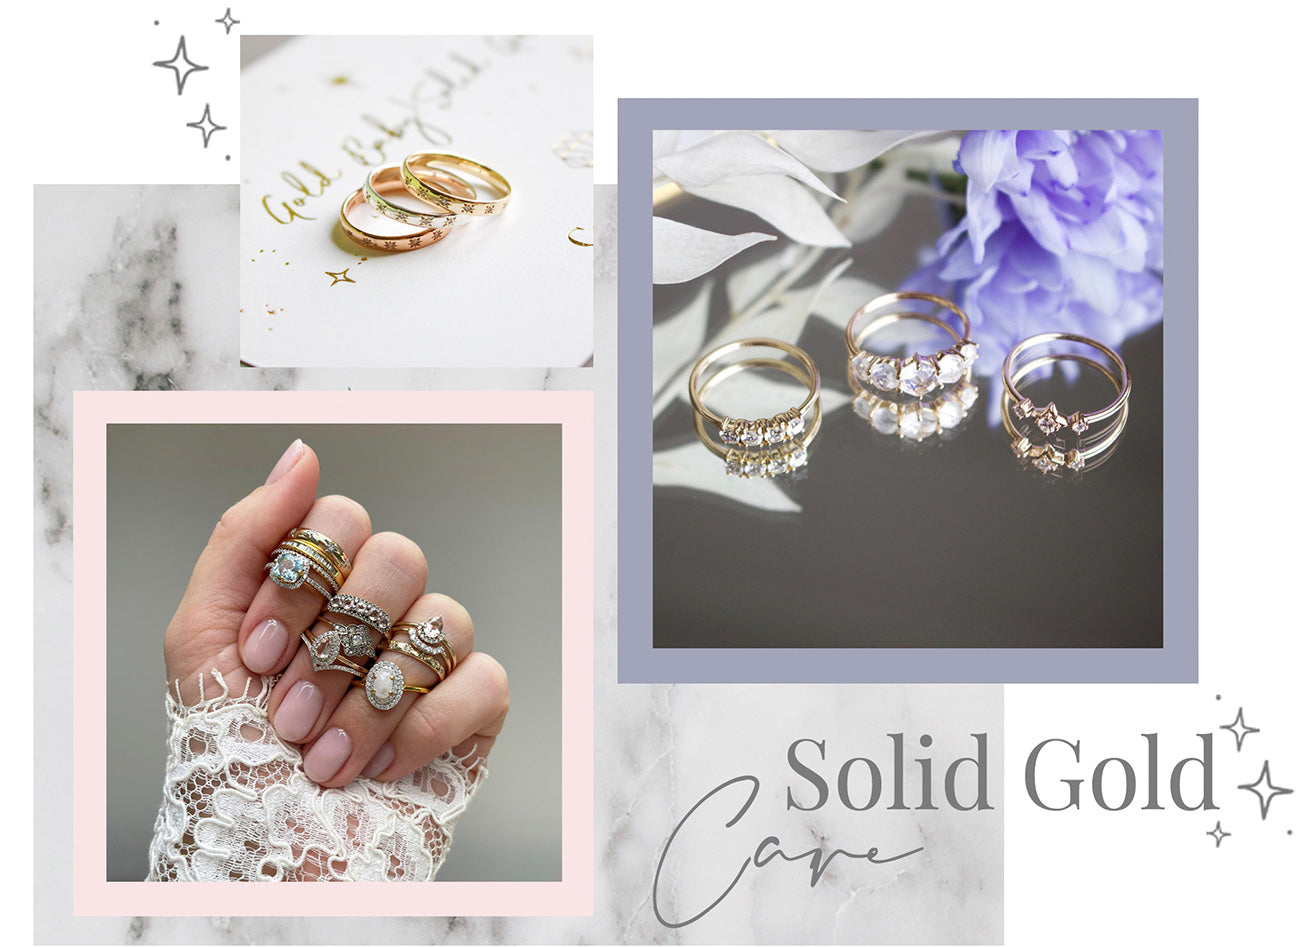 Solid gold wedding rings care guide